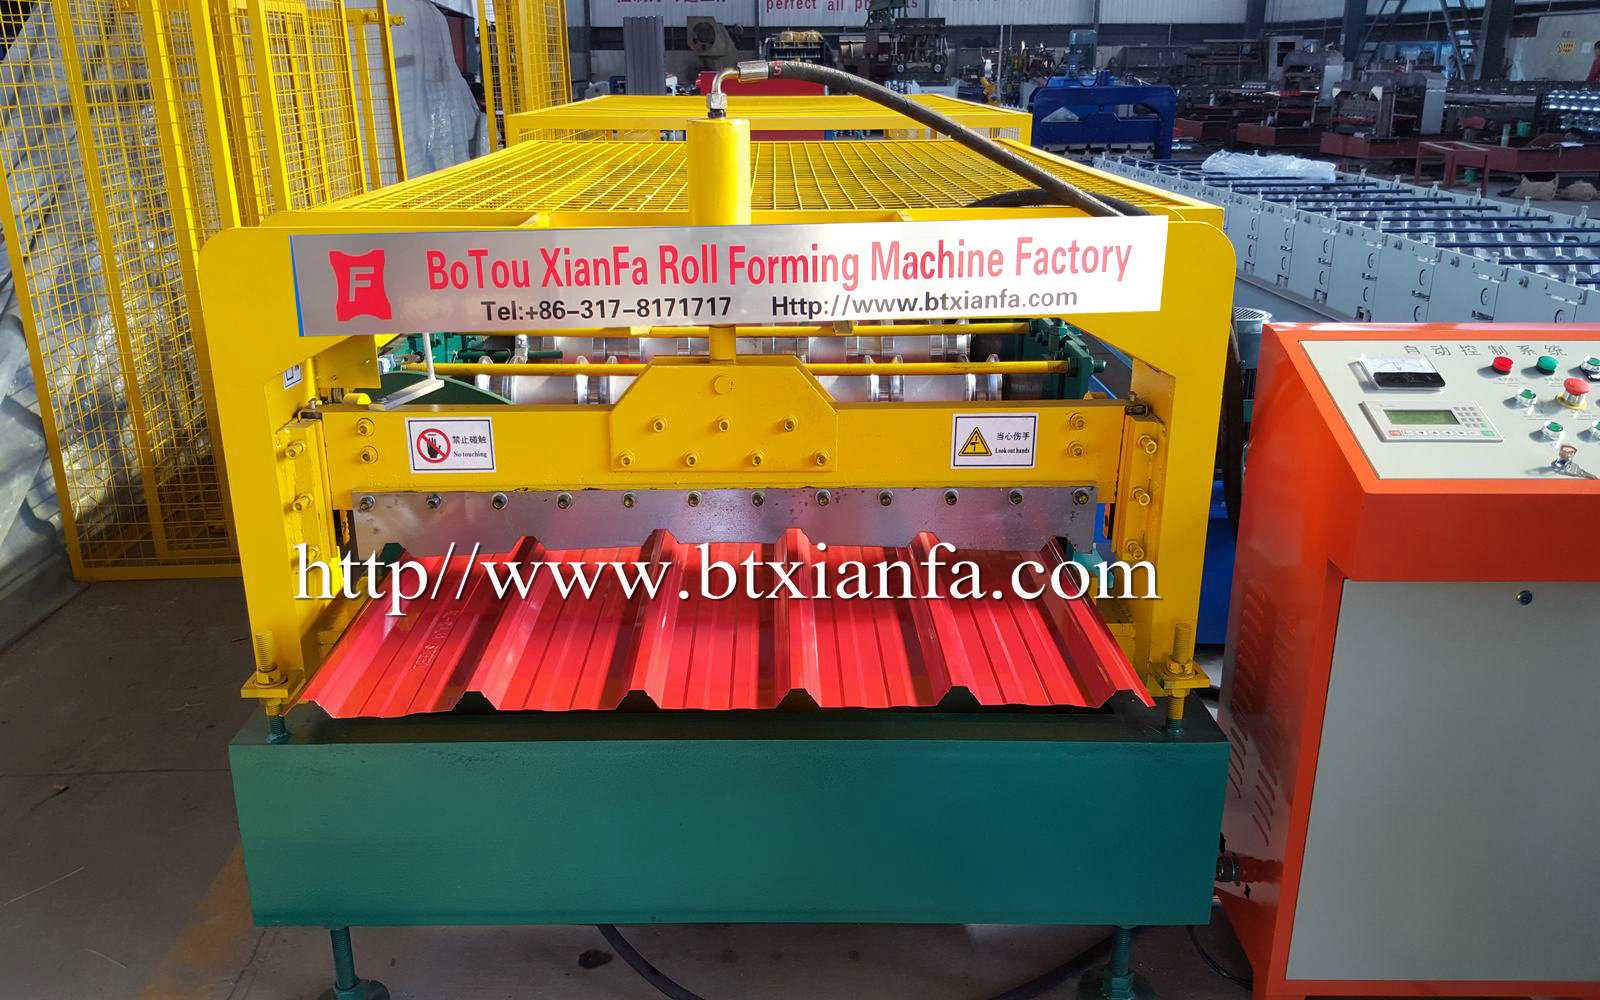 Bo tou Roll Forming Machine